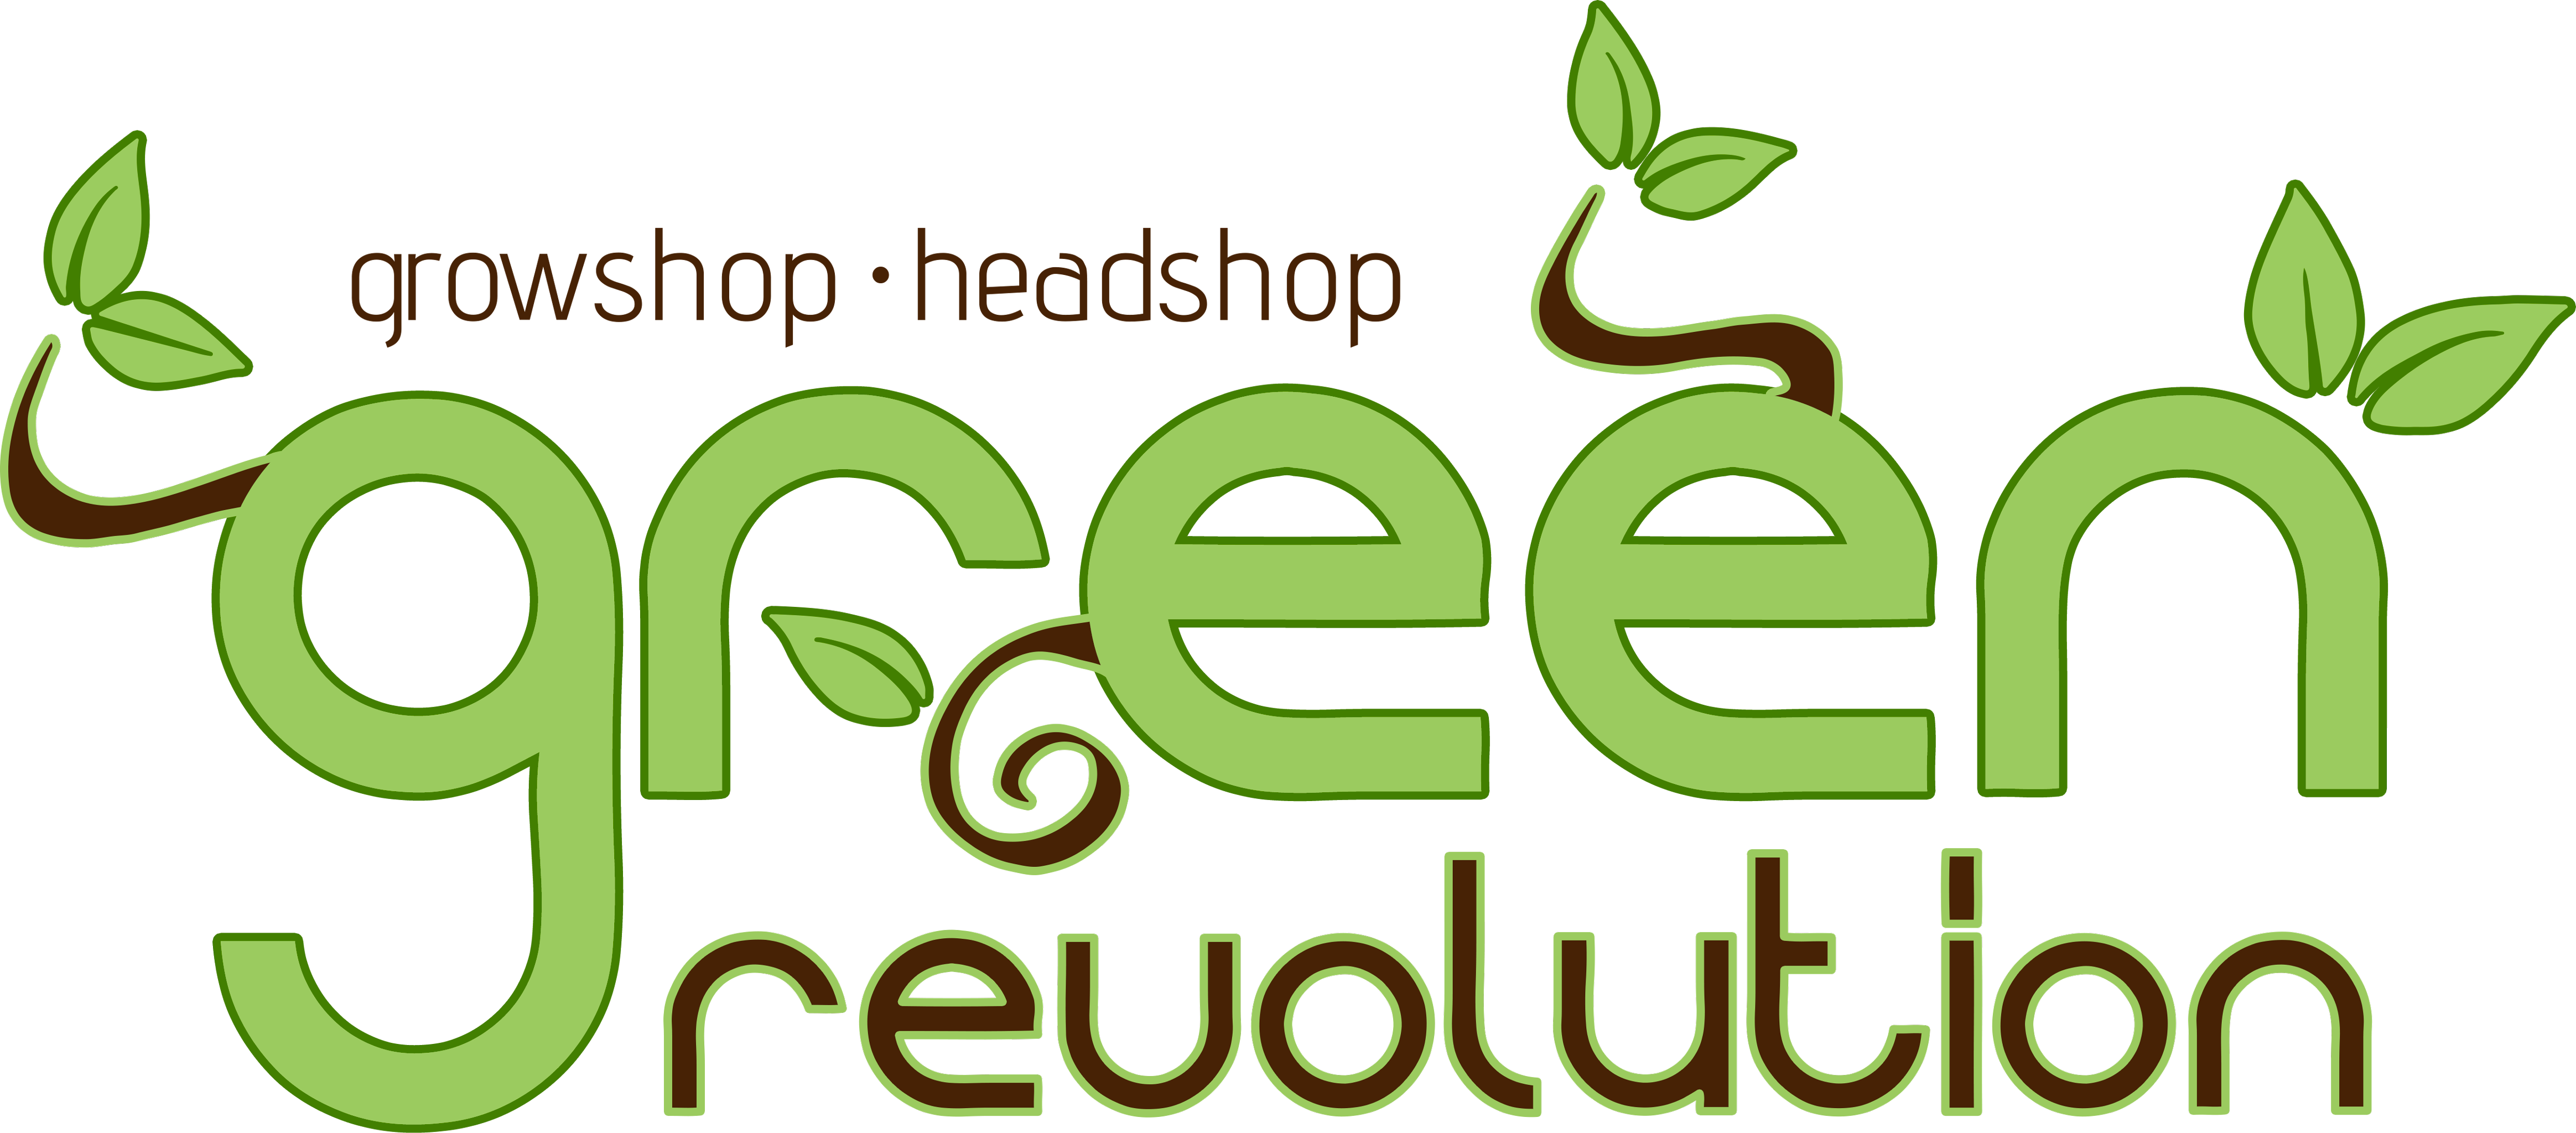 Green Revolution growshop/headshop